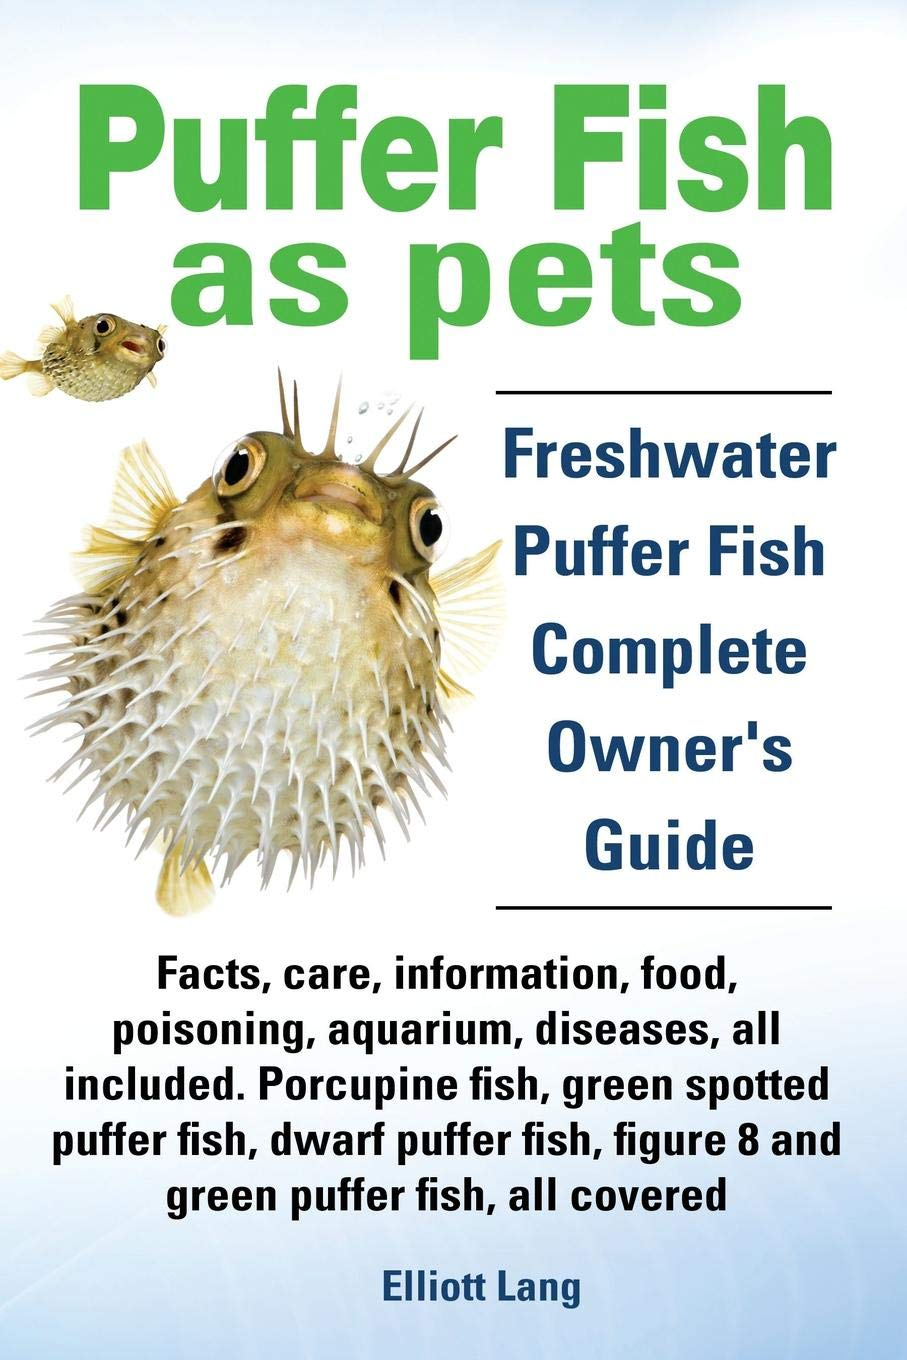 Puffer Fish As Pets. Freshwater Puffer Fish Facts Care Information Food Poisoning Aquarium Diseases All Included. The Must Have Guide For All P